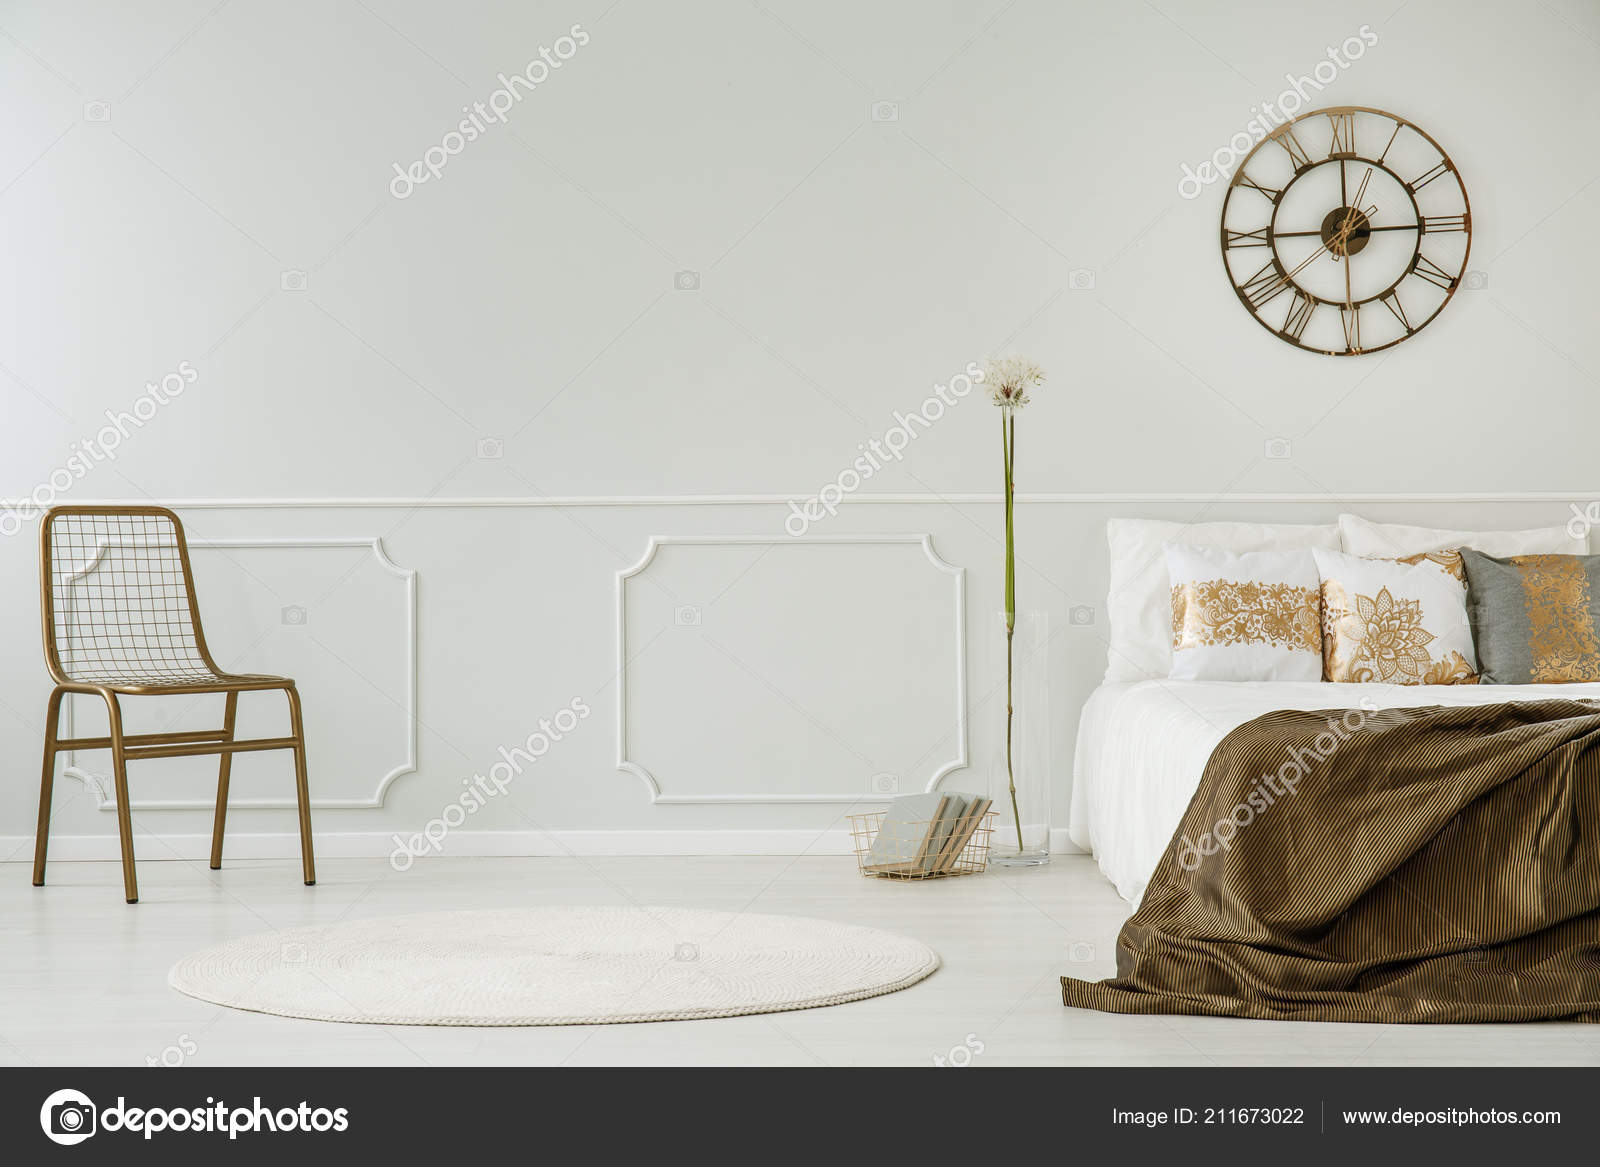 bedroom chair with blanket french dining chairs melbourne gold clock bed white interior dandelion real stock photo